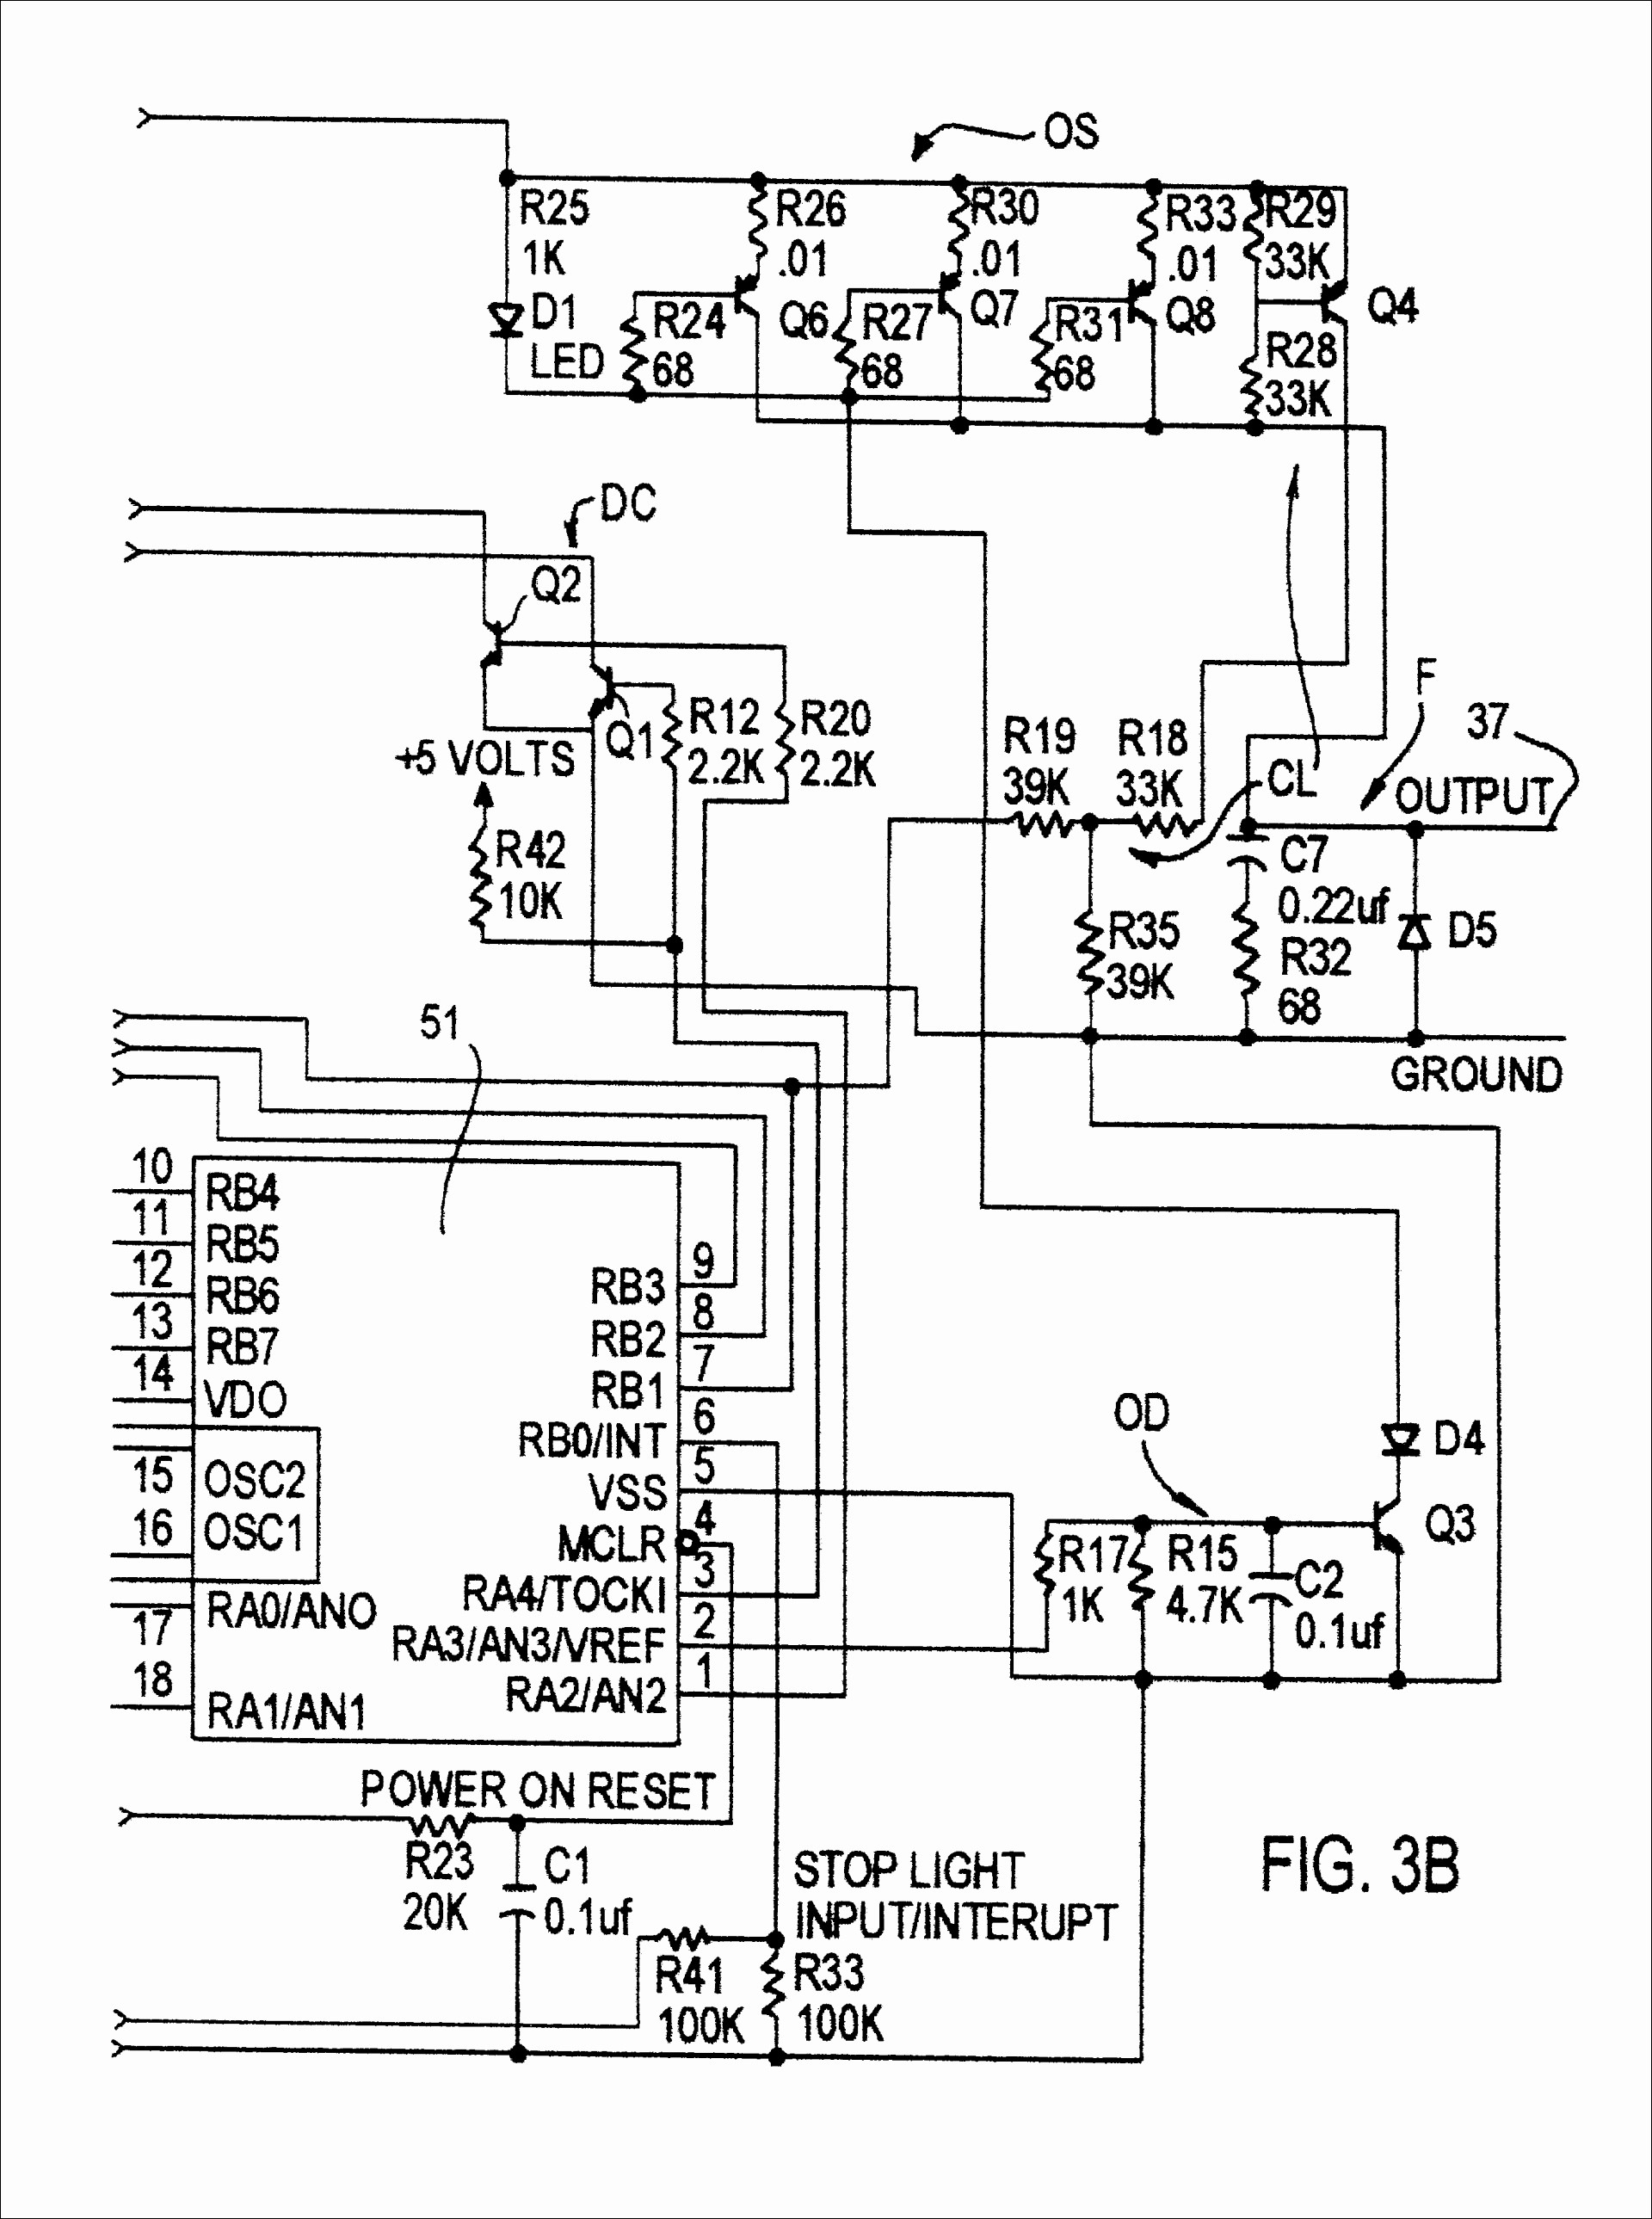 2002 Chrysler Sebring Engine Diagram Wiring Library 2 4 1999 Silverado Harness Routing Electrical 7